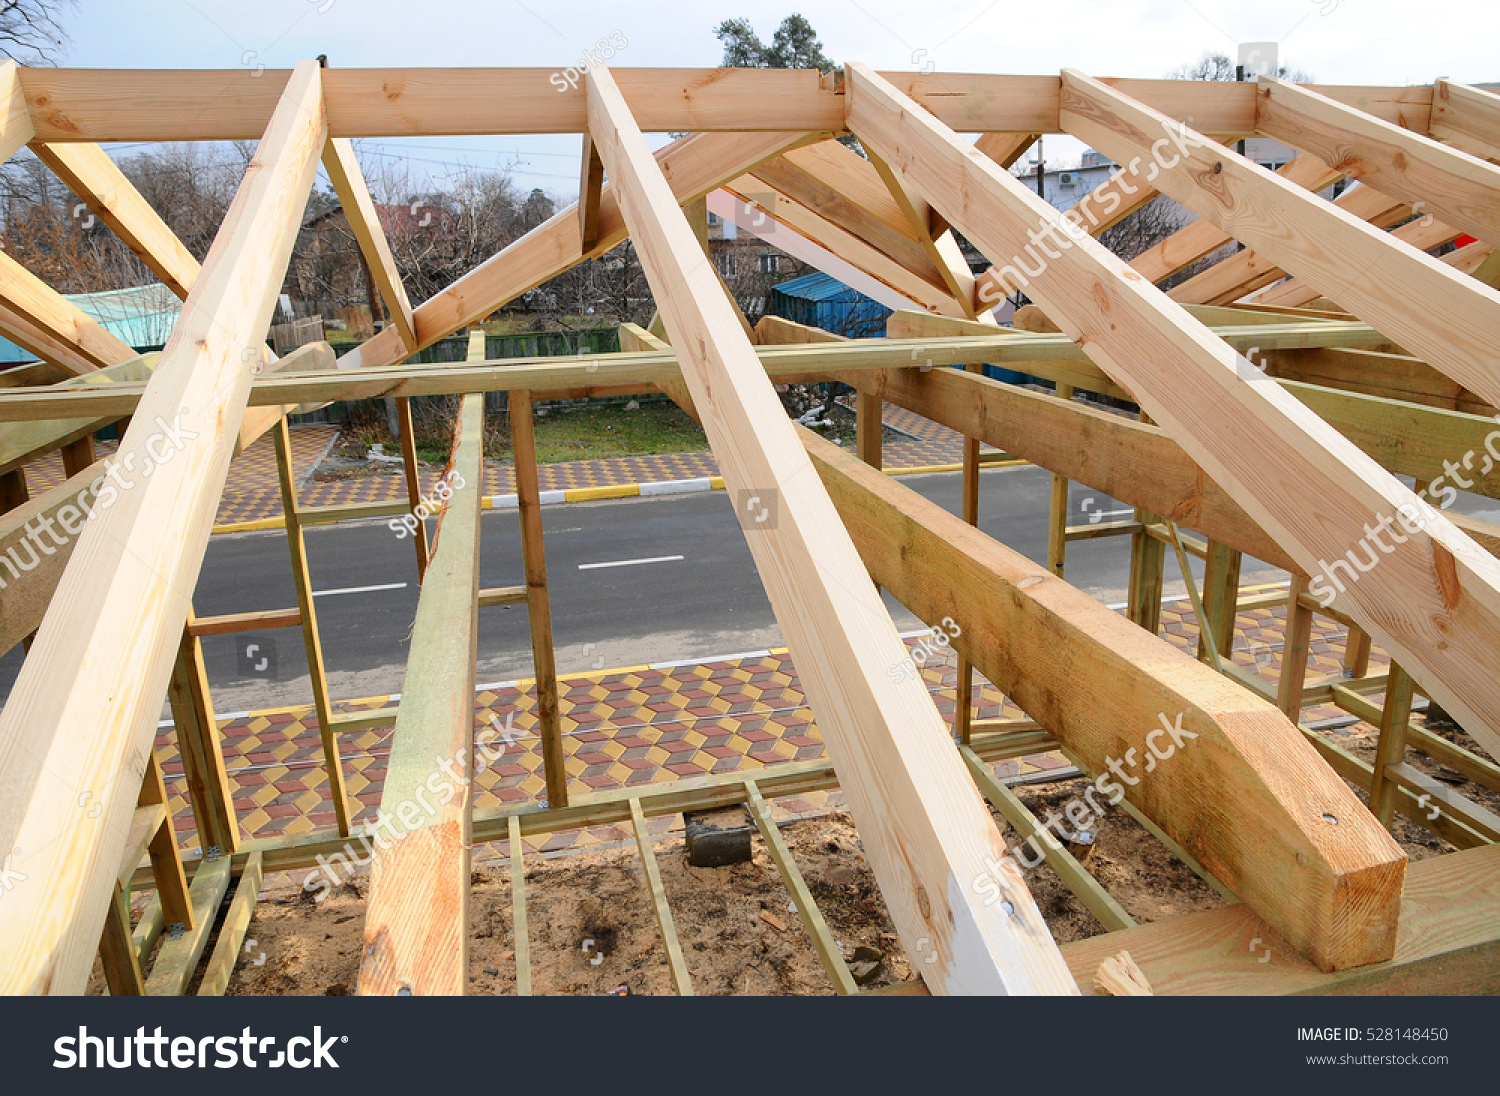 the wooden structure of the building wooden frame building wooden roof construction photo - Wood Frame Building